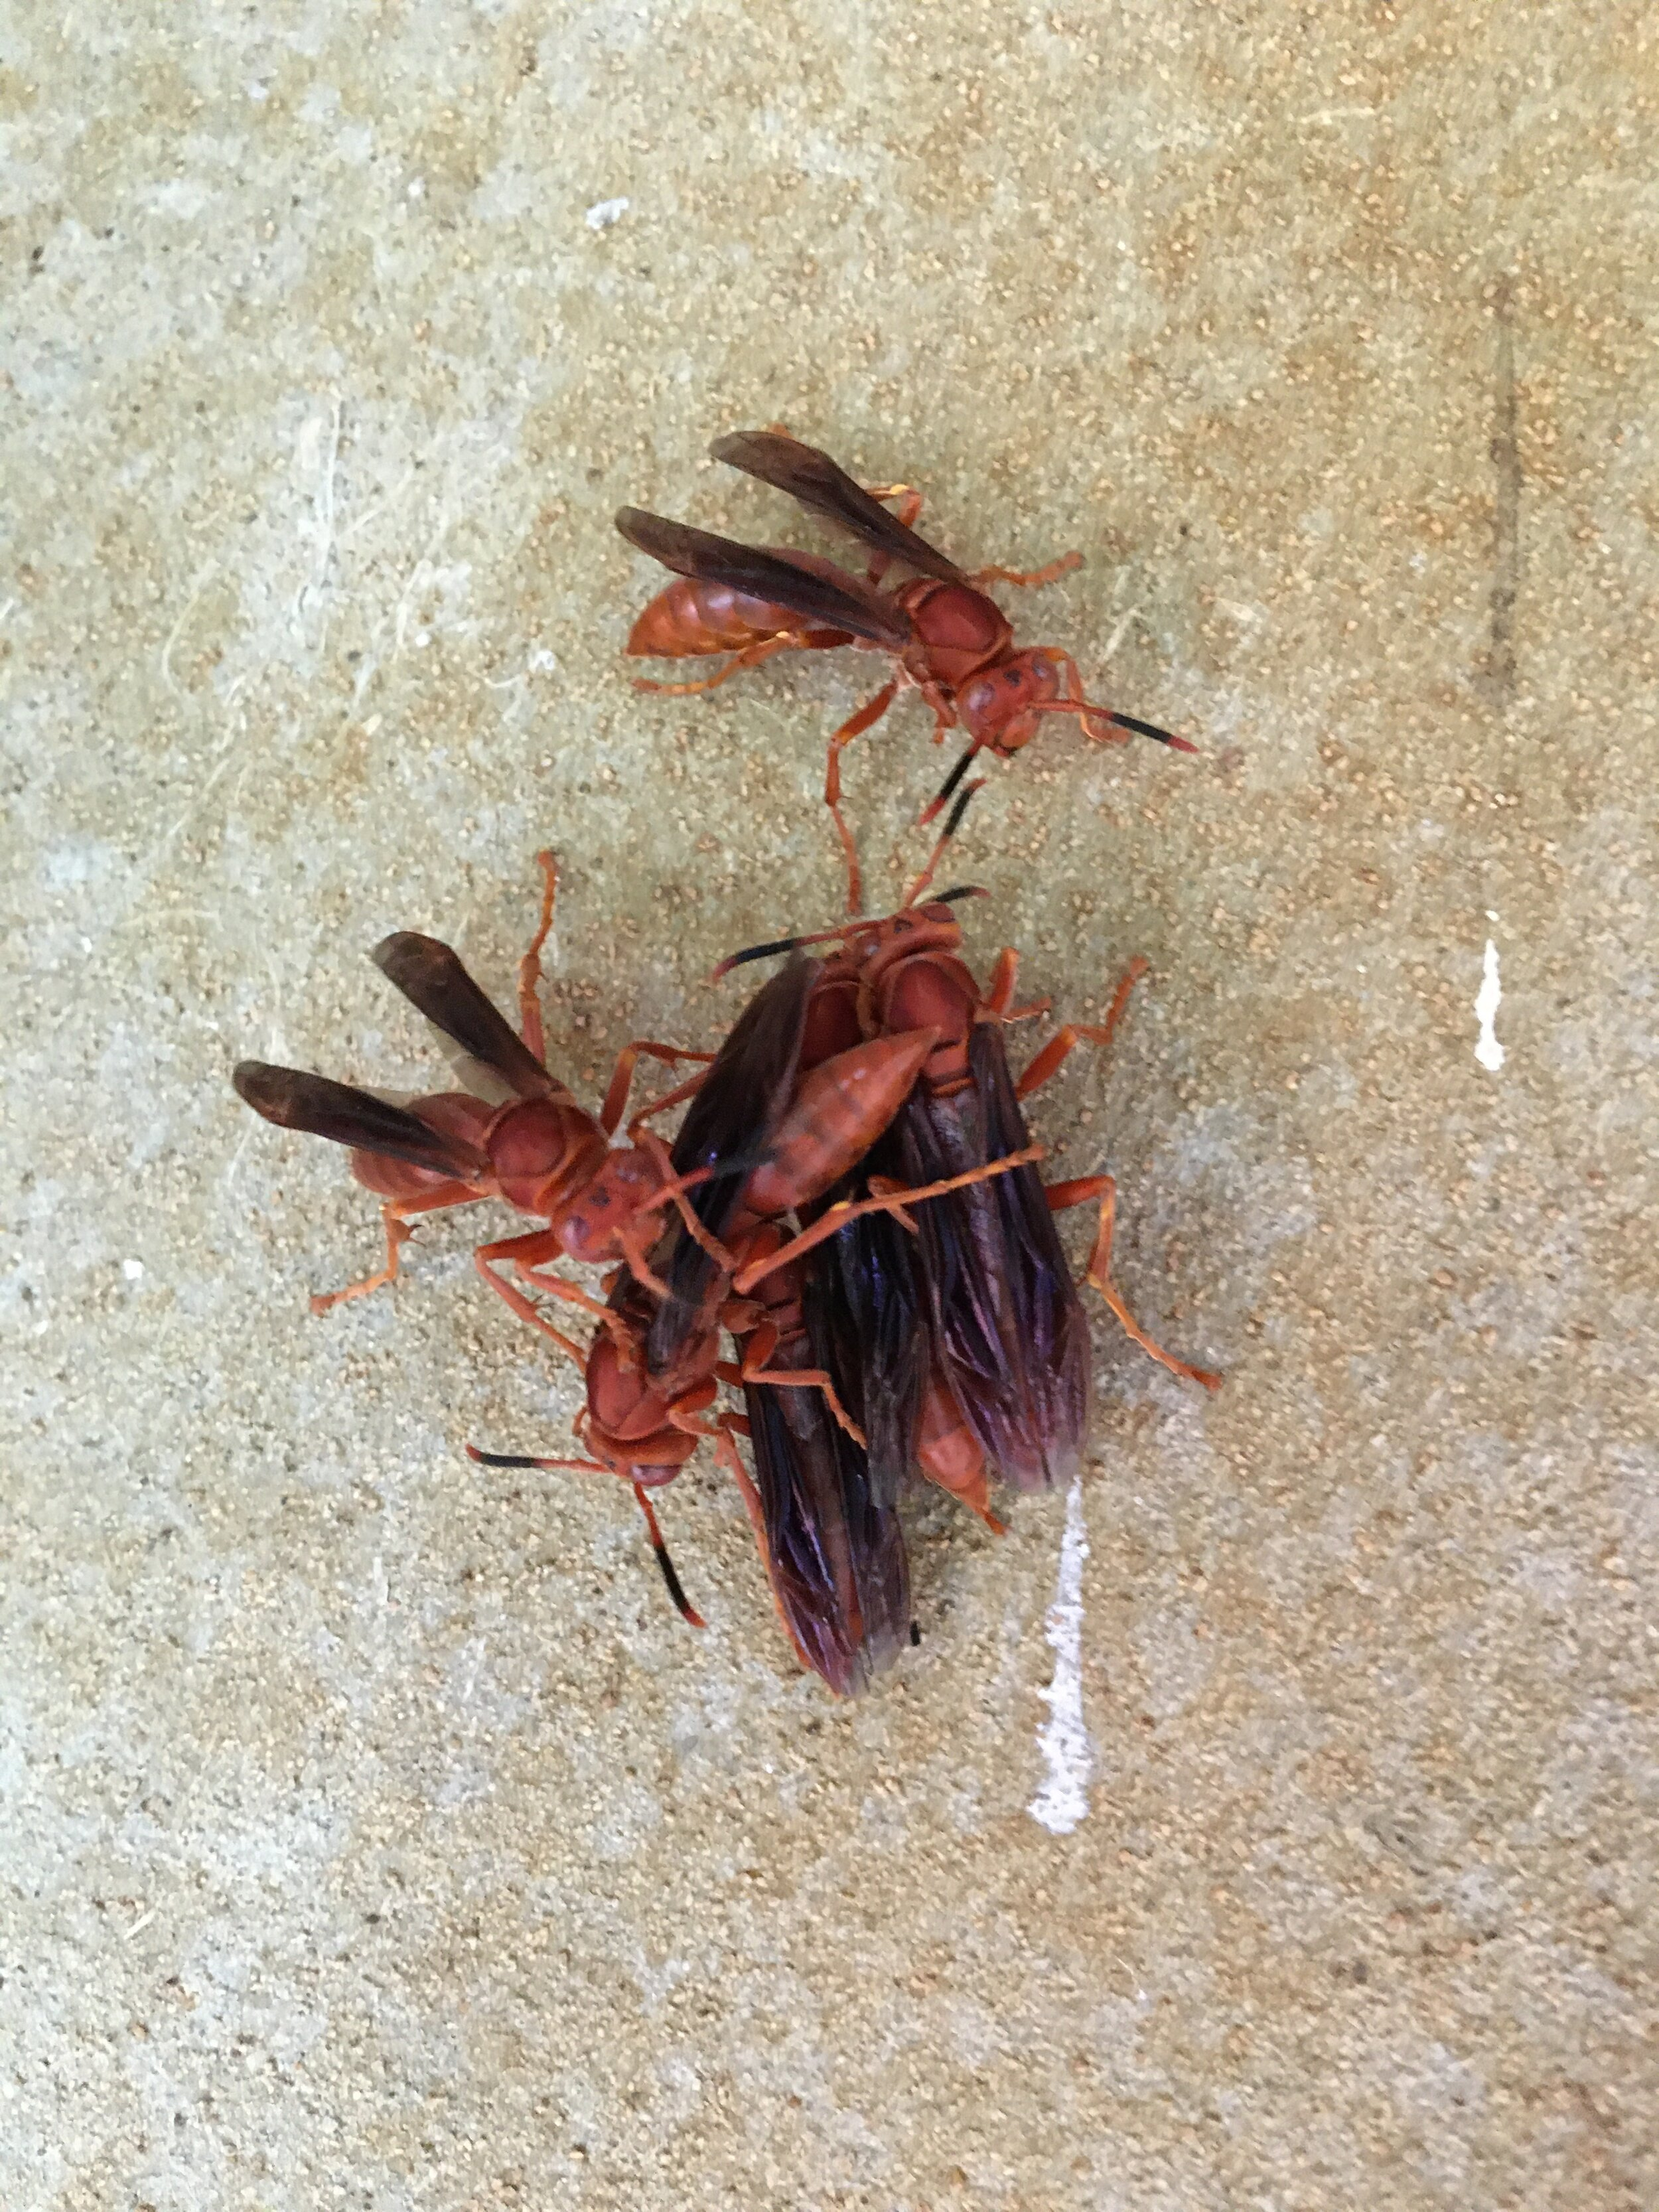 The hornets that love clustering on the walls and ceiling of my bedroom